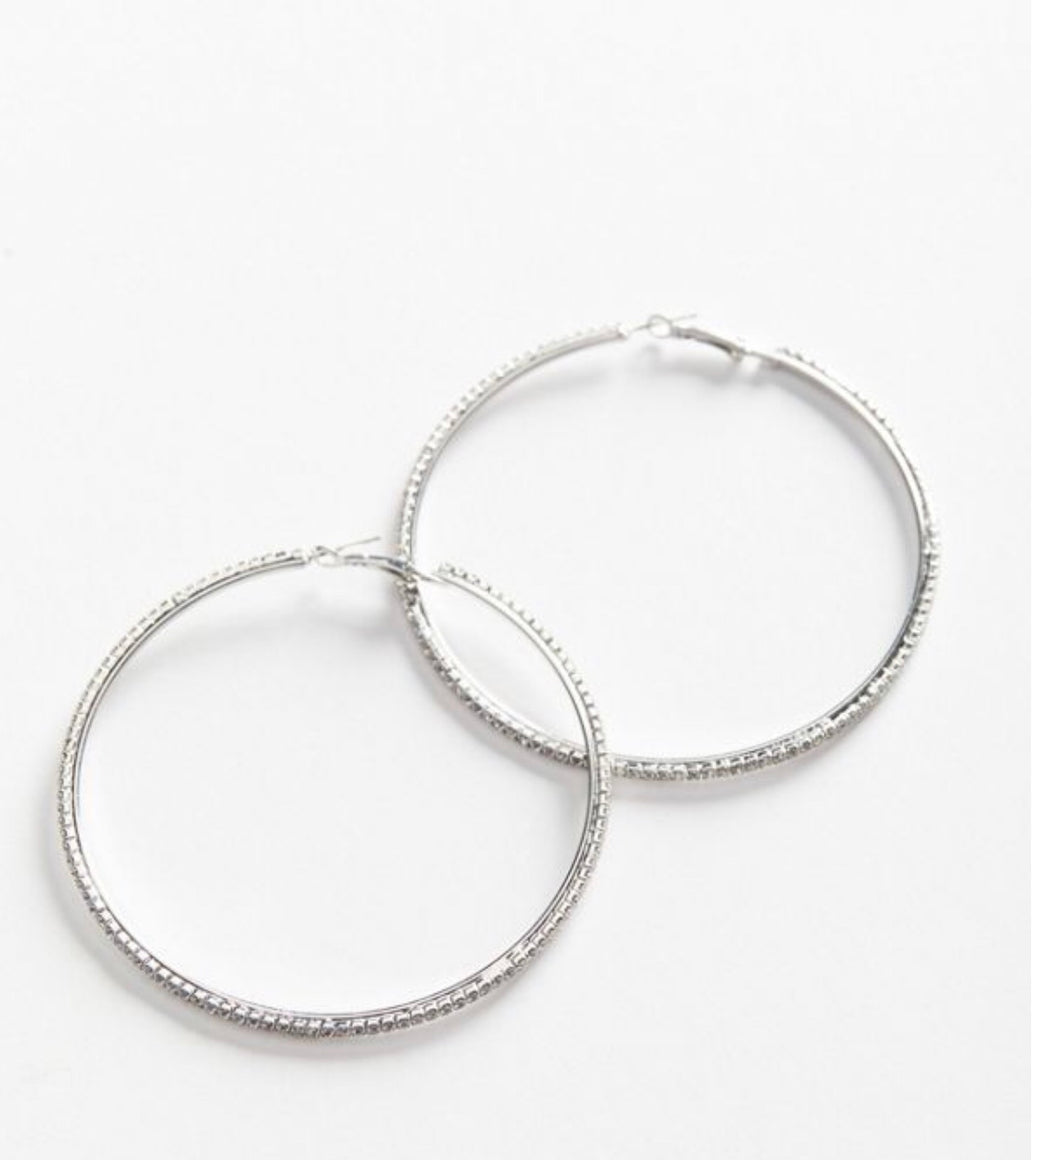 Silver Bling Hoops- Medium